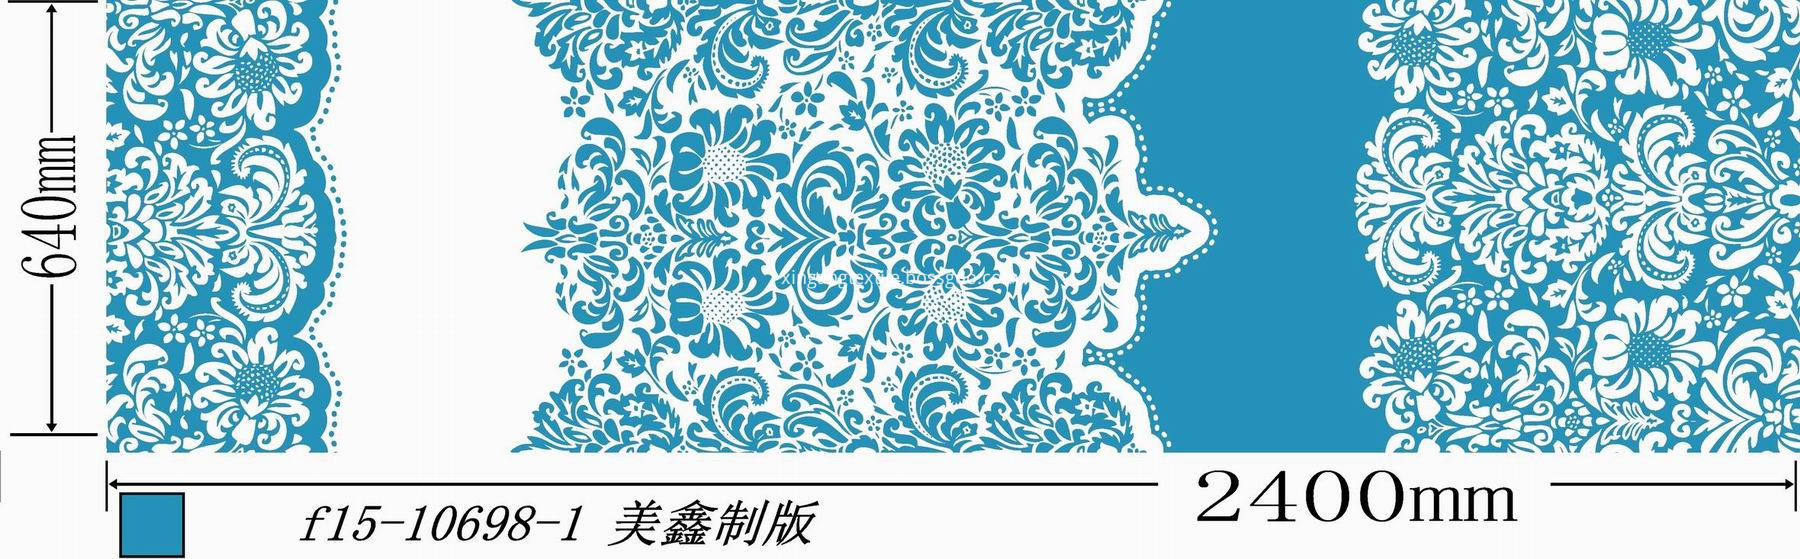 XINGANG BEDDING FABRIC WWW.XINGANGTEX (77)